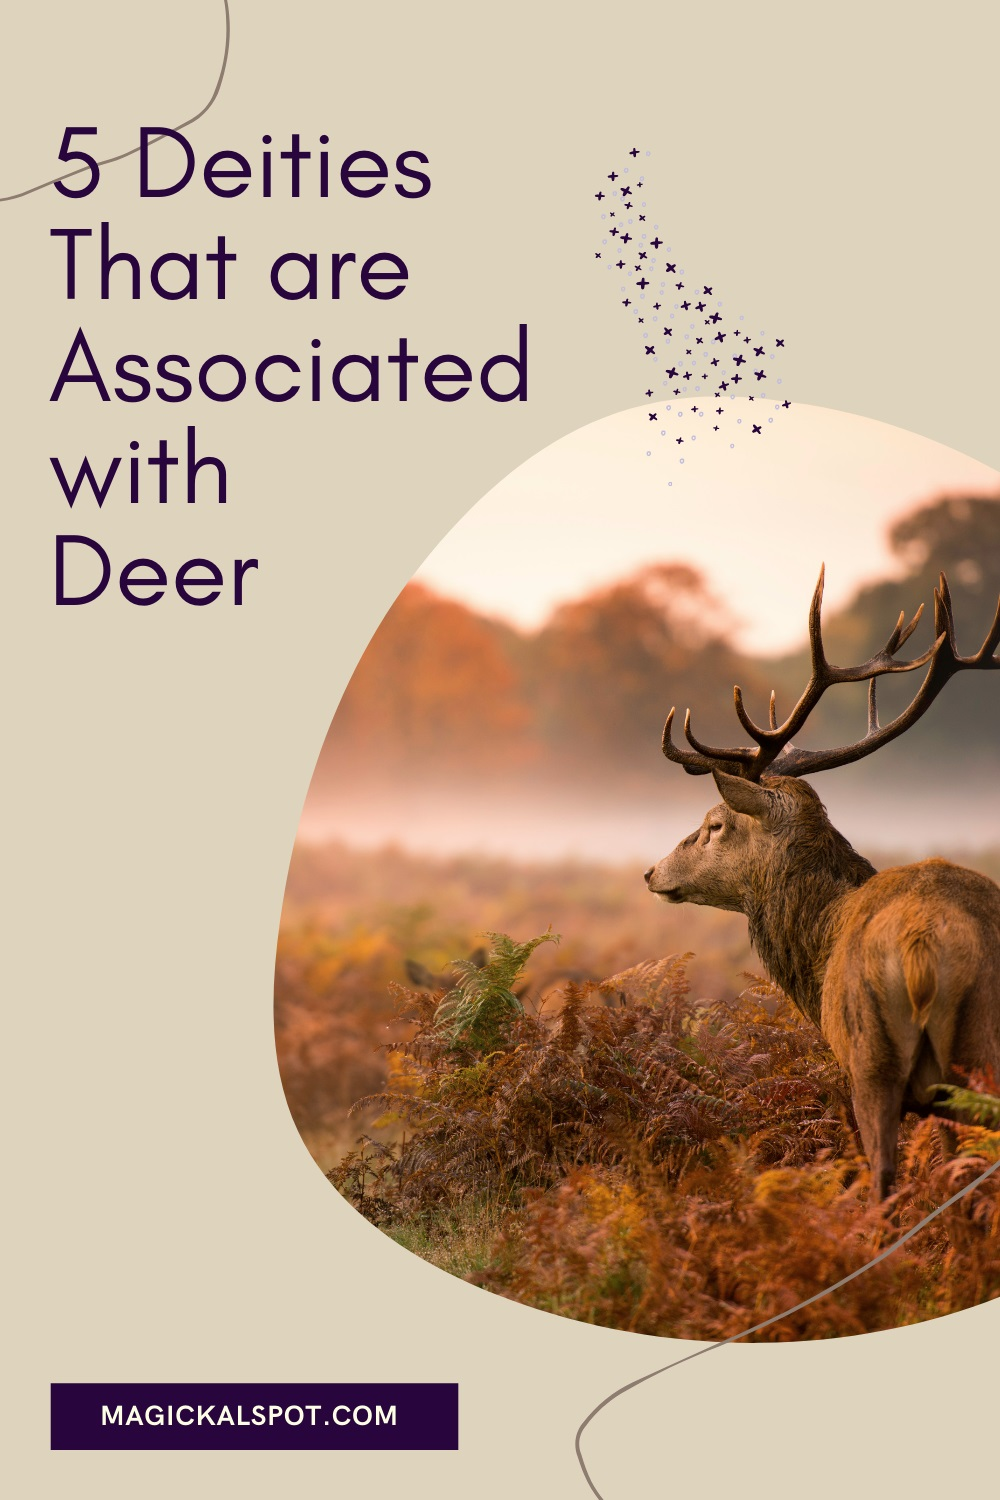 5 Deities That are Associated with Deer by Magickal Spot